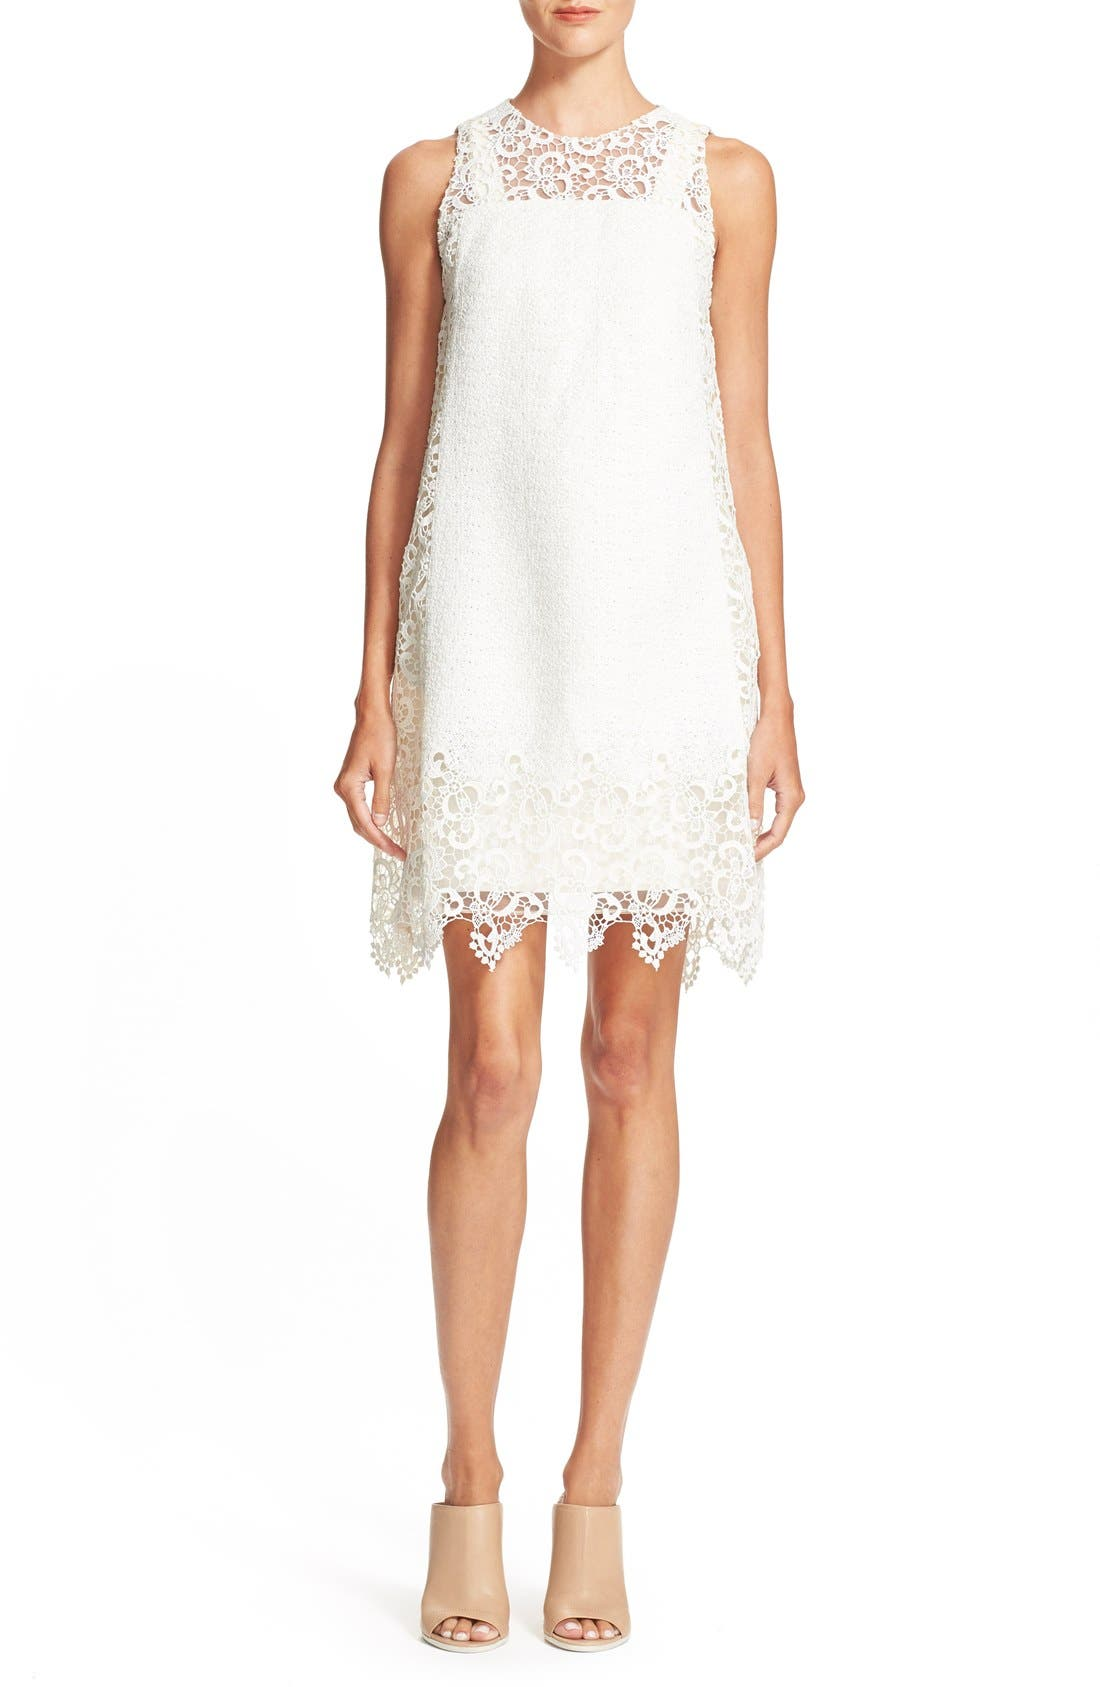 Alternate Image 1 Selected - Hunter Bell 'Keely' Lace & Organza Shift Dress